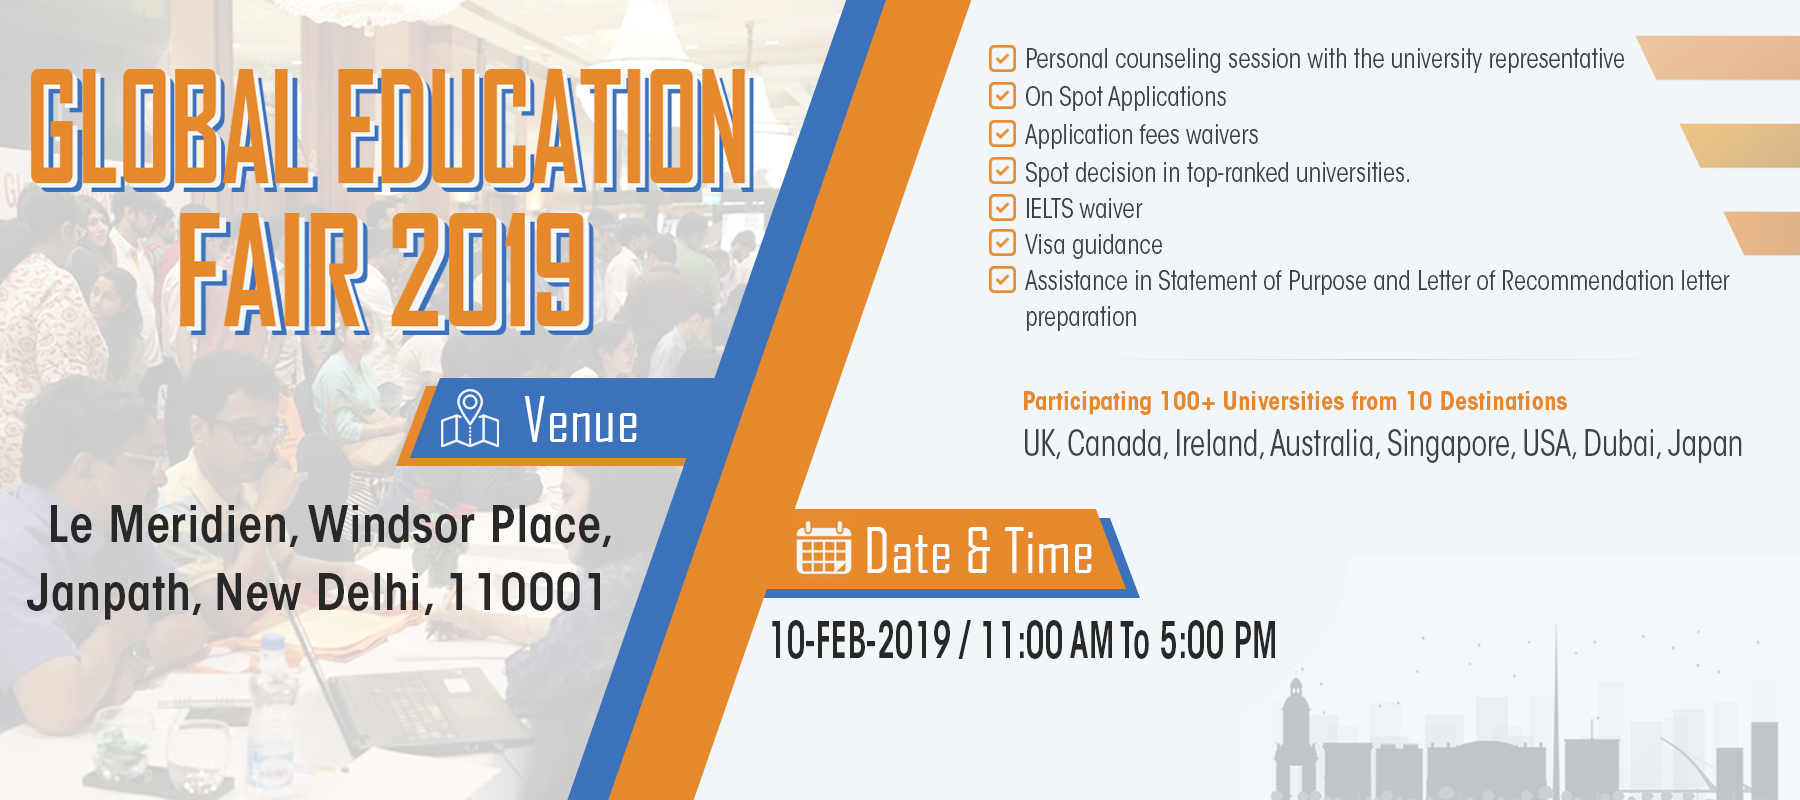 Global Education Fair 2019, New Delhi, Delhi, India